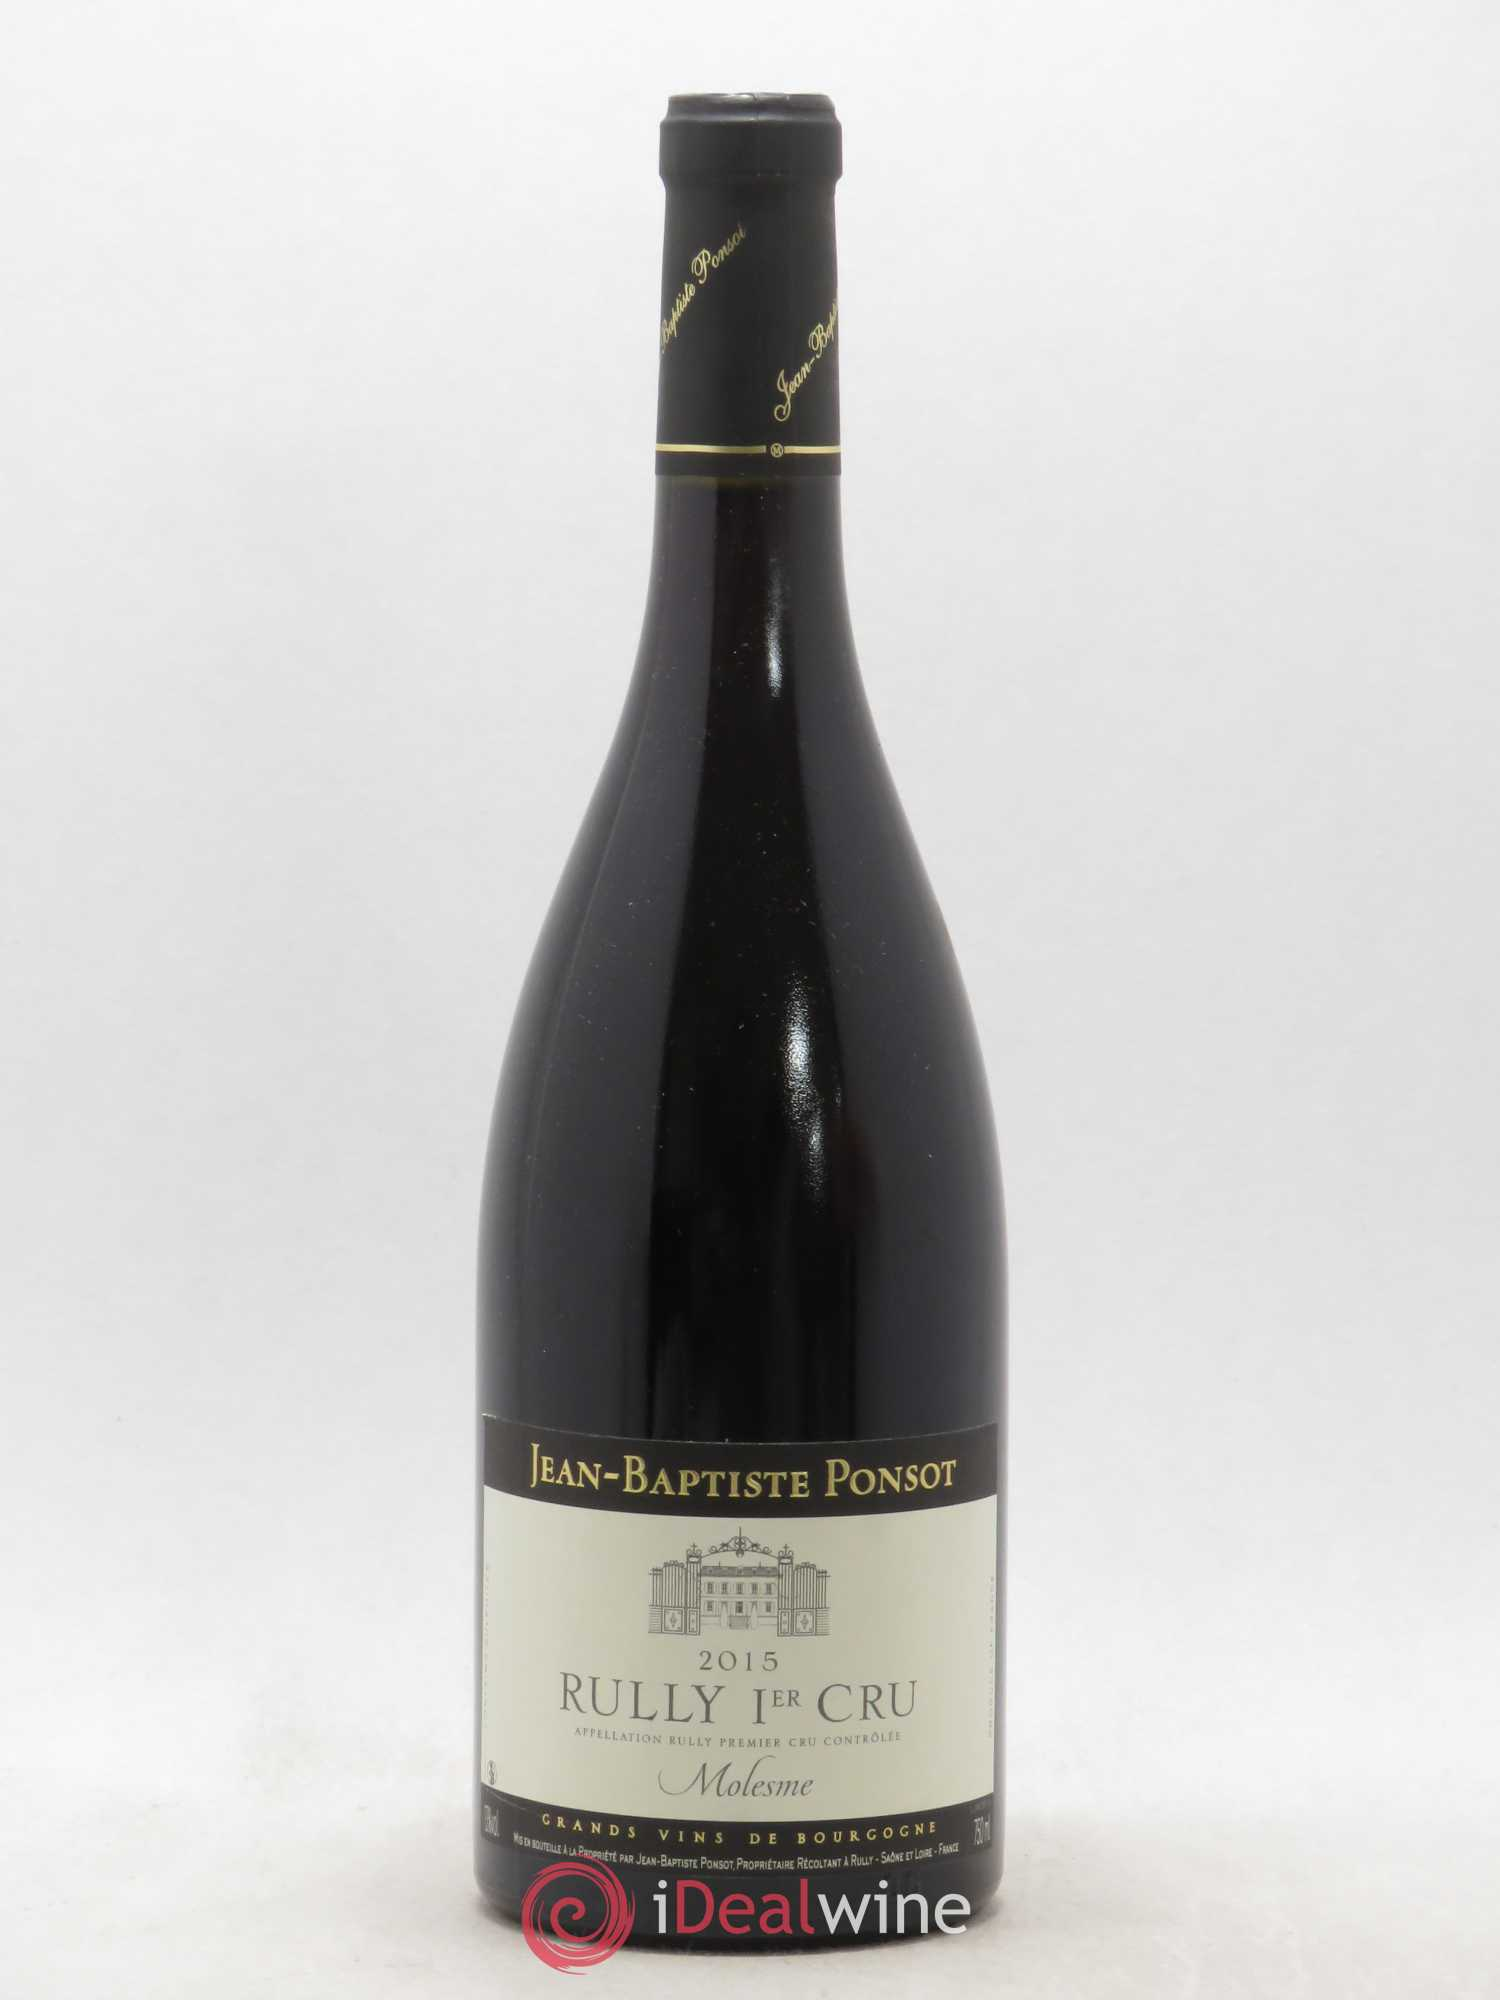 Rully 1er Cru Molesme Jean-Baptiste Ponsot  2015 - Lot of 1 Bottle